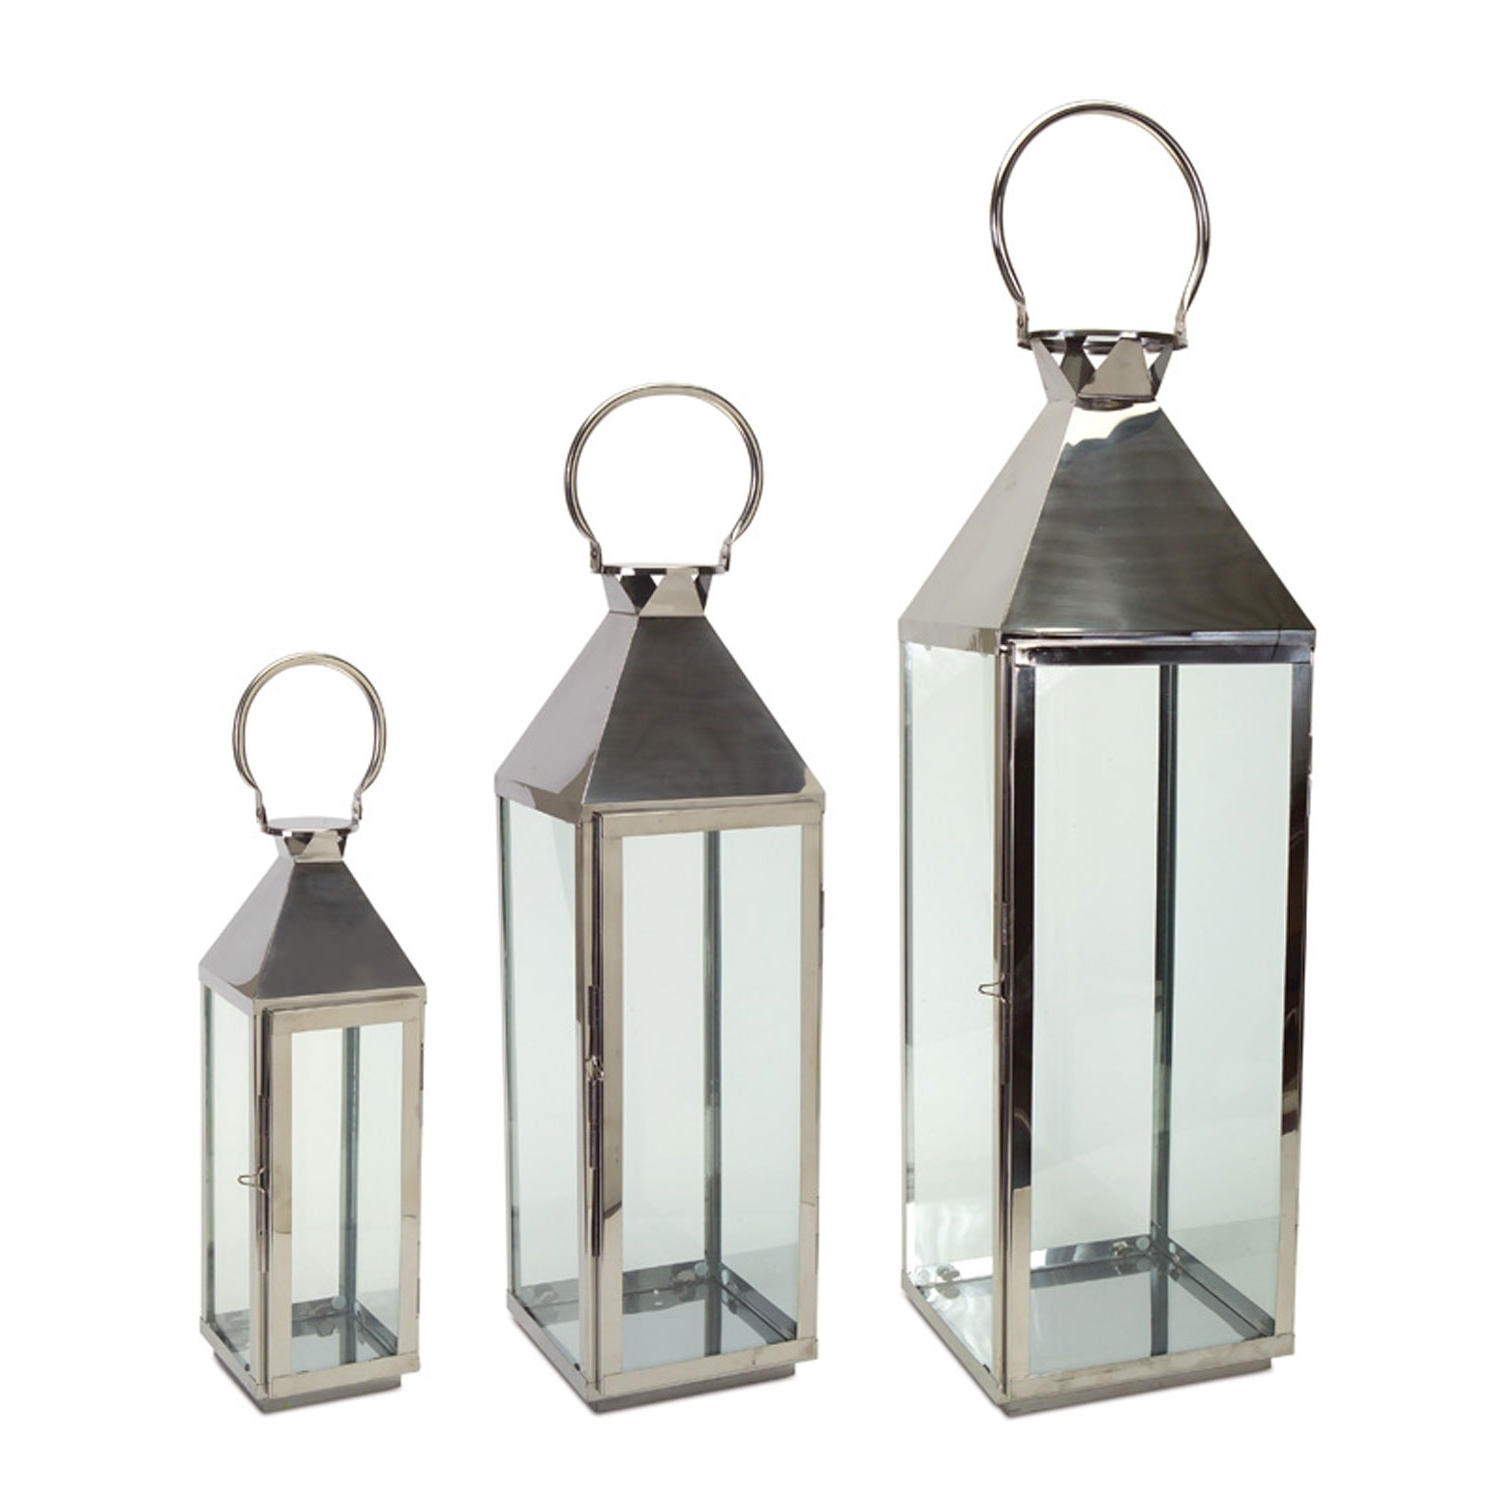 Most Current Hanging Outdoor Tea Light Lanterns Throughout Candle Lanterns, Outdoor Hanging Lanterns, Decorative On Sale (View 11 of 20)